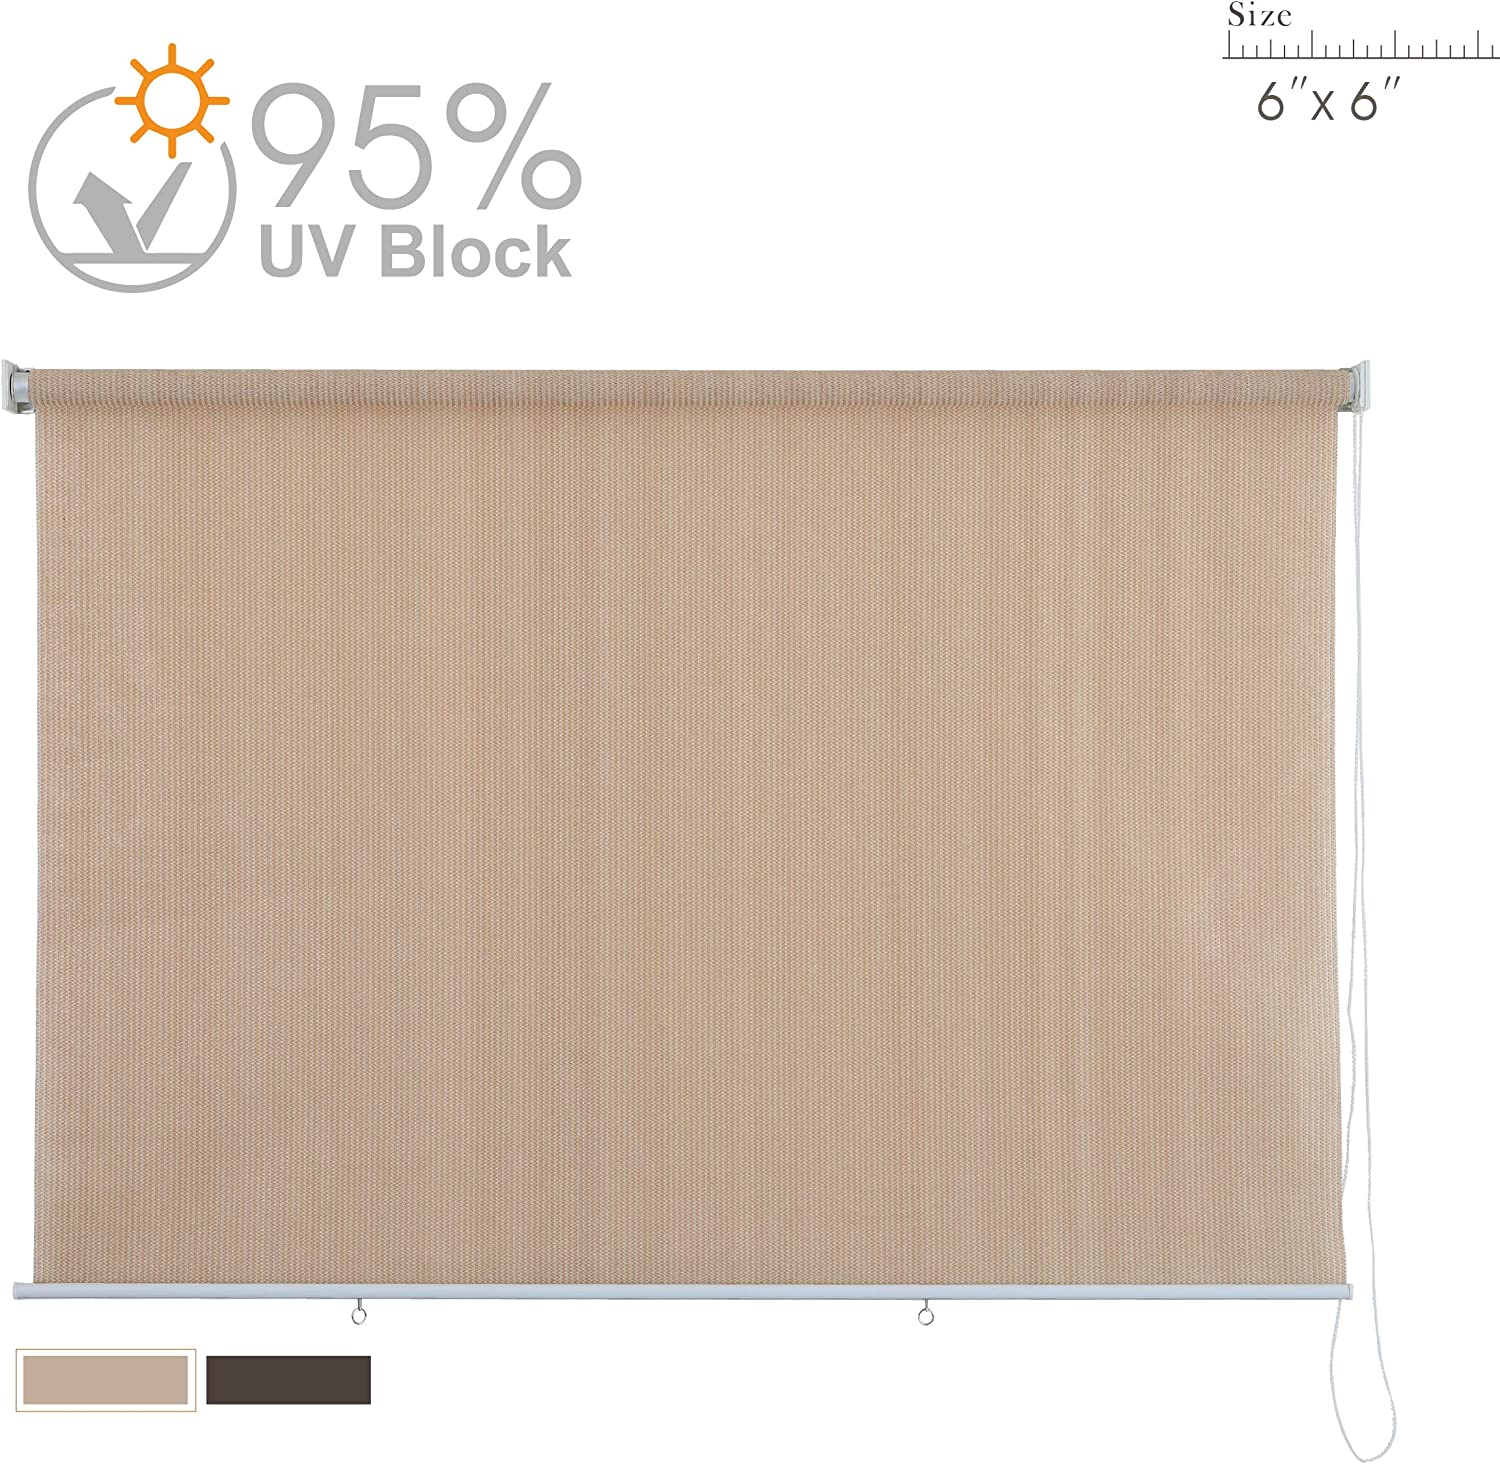 PHI VILL Sun Shade Roller Outdoor Blinds Patio Roller Shade Sun Block 95 UV Protection 6 W x 6 L Wheat